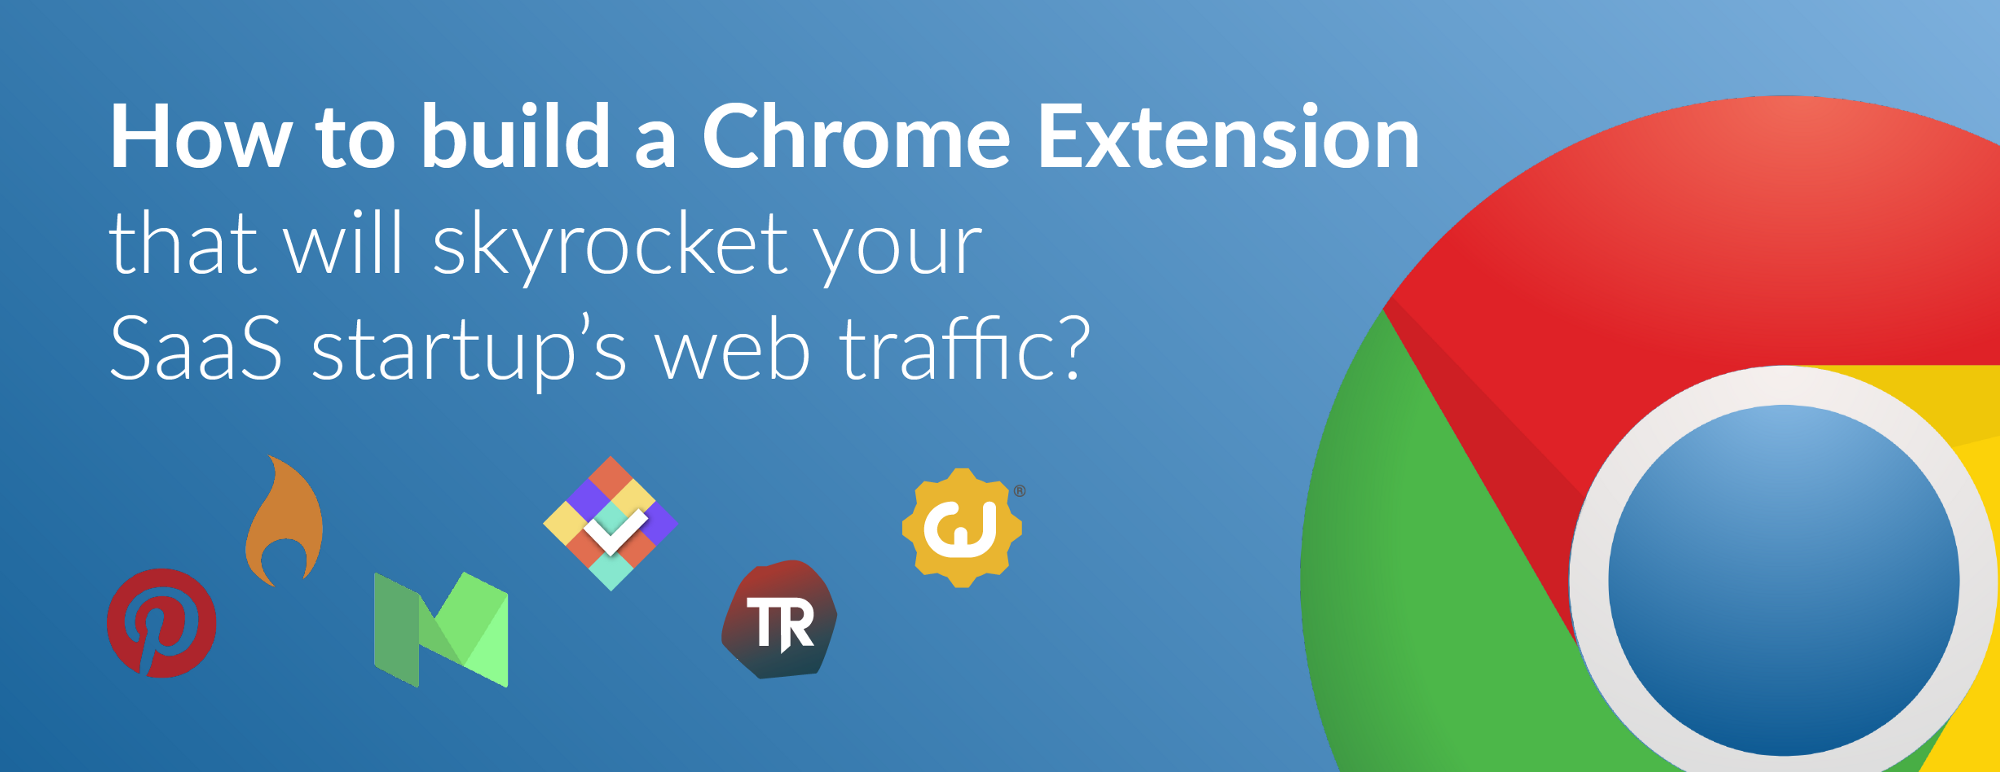 How to build a Chrome Extension that will skyrocket your SaaS ...